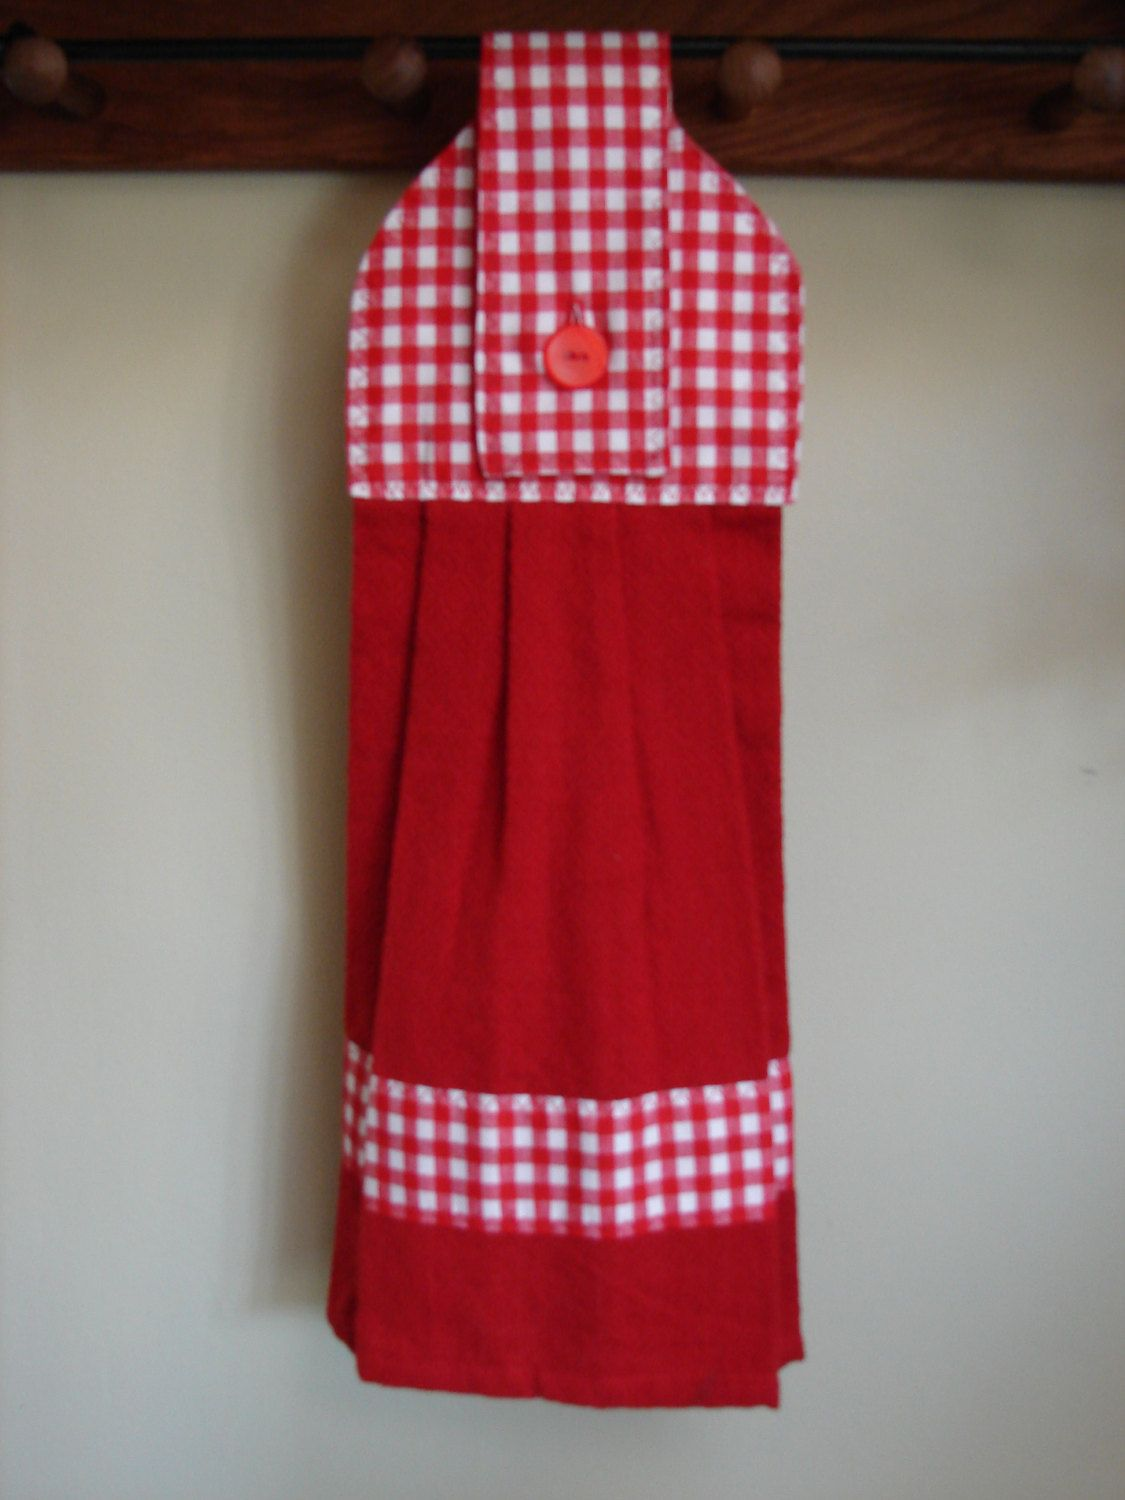 Red Gingham Hanging Kitchen Towel | Country Clutter